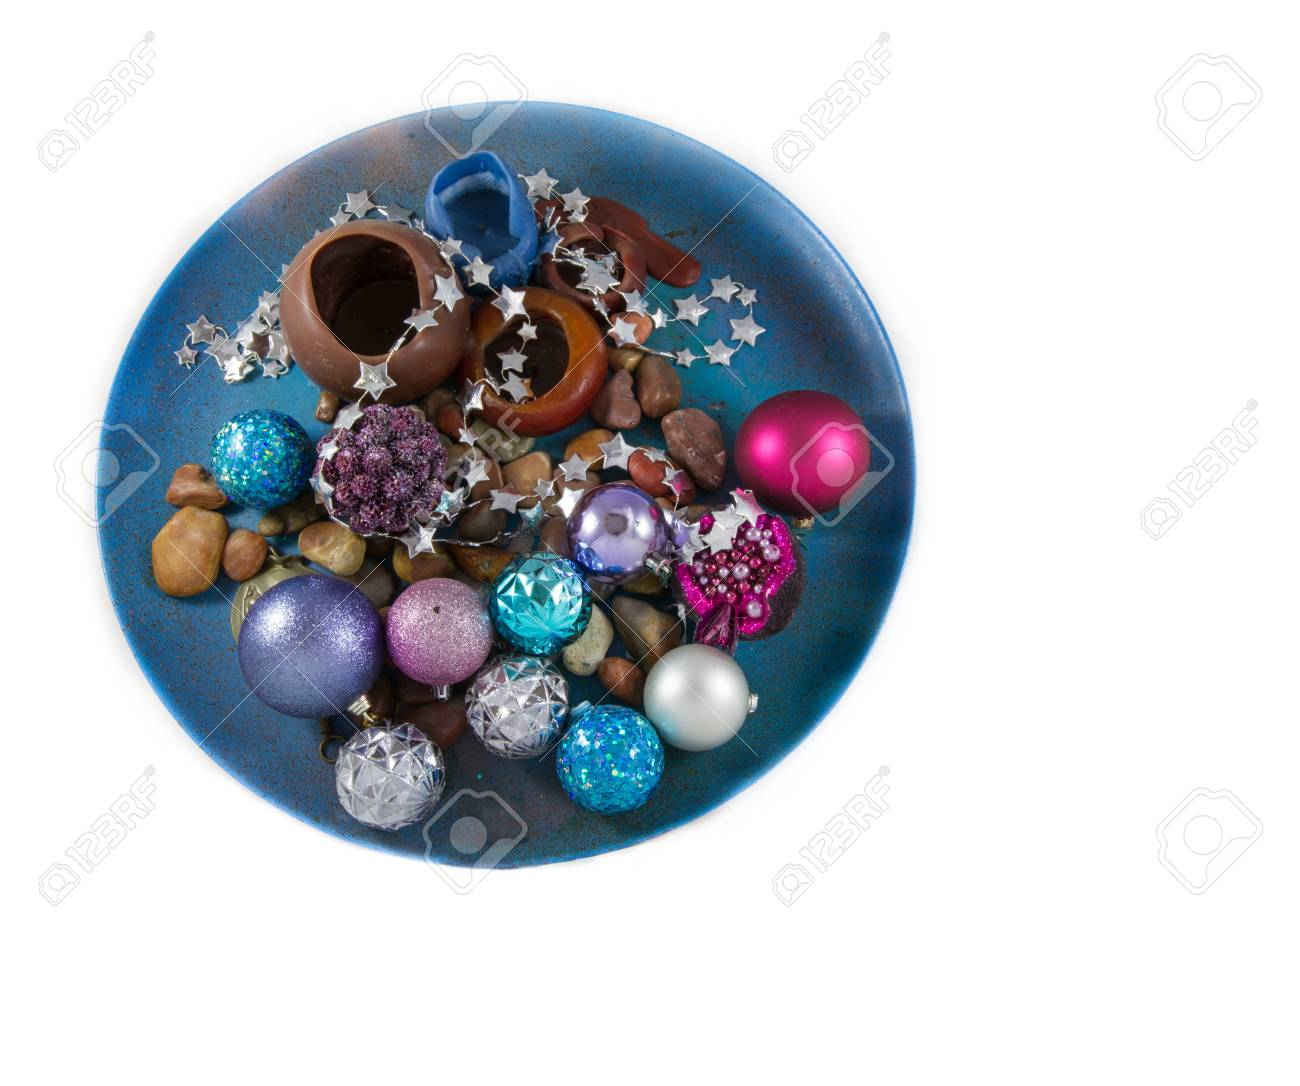 Christmas Decoration In A Plate With Dominant Blue And Purple Colors On White Background Stock